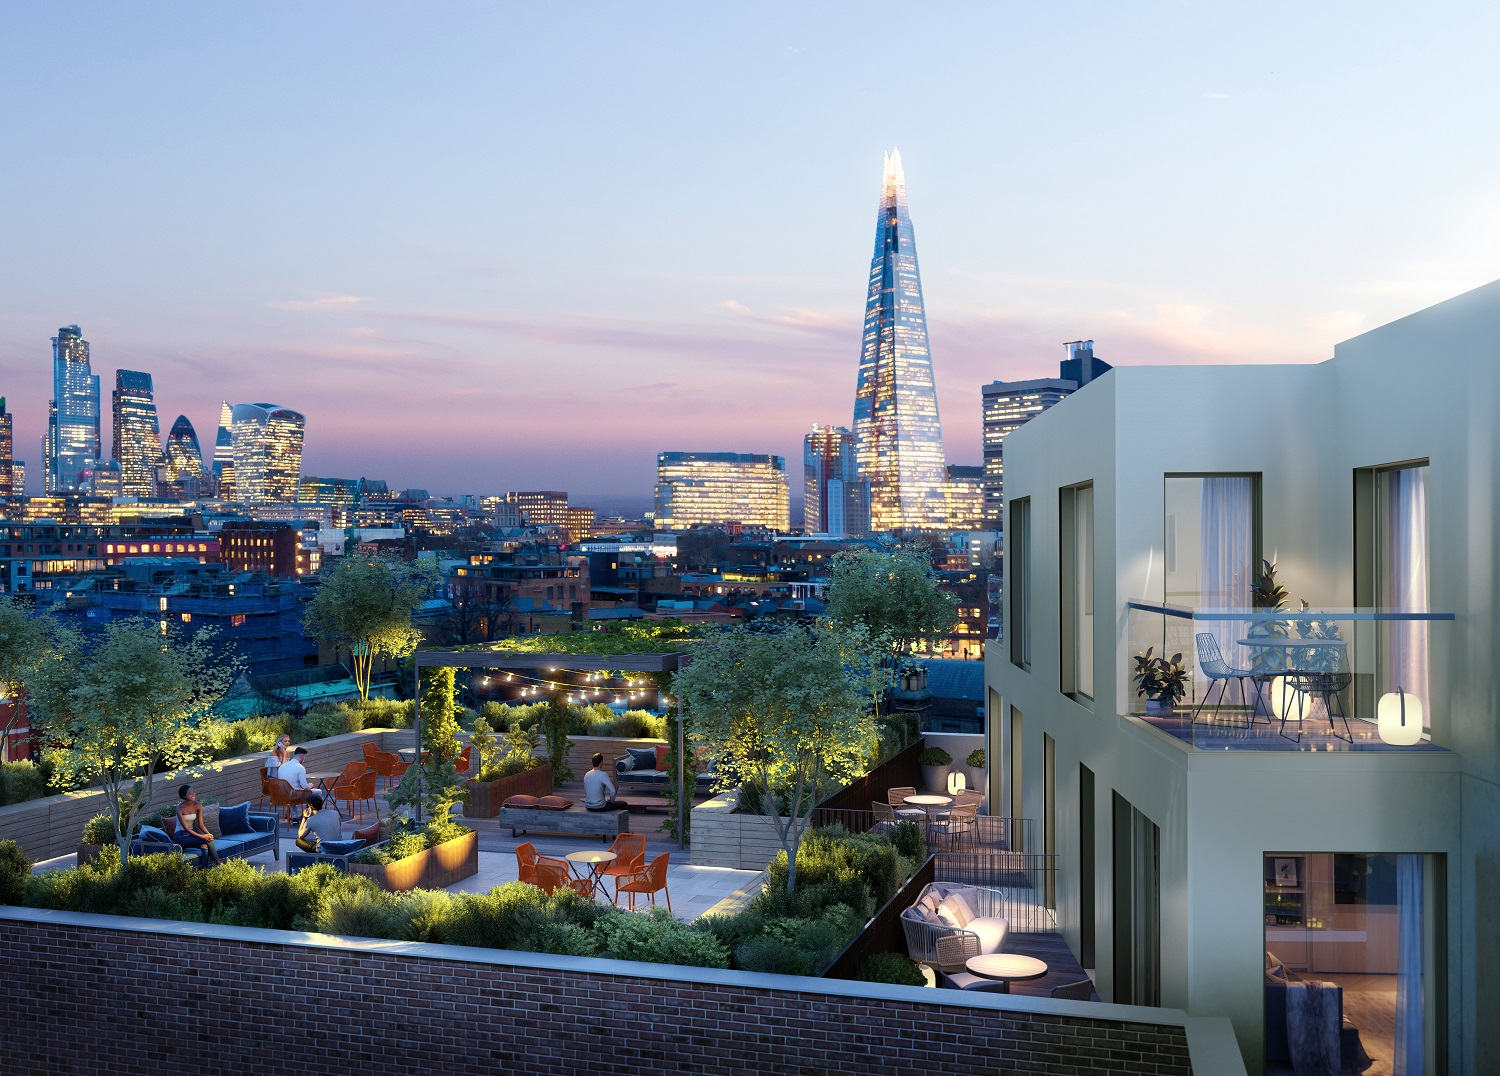 Stunning Rooftop View in London night Time Shard Lights